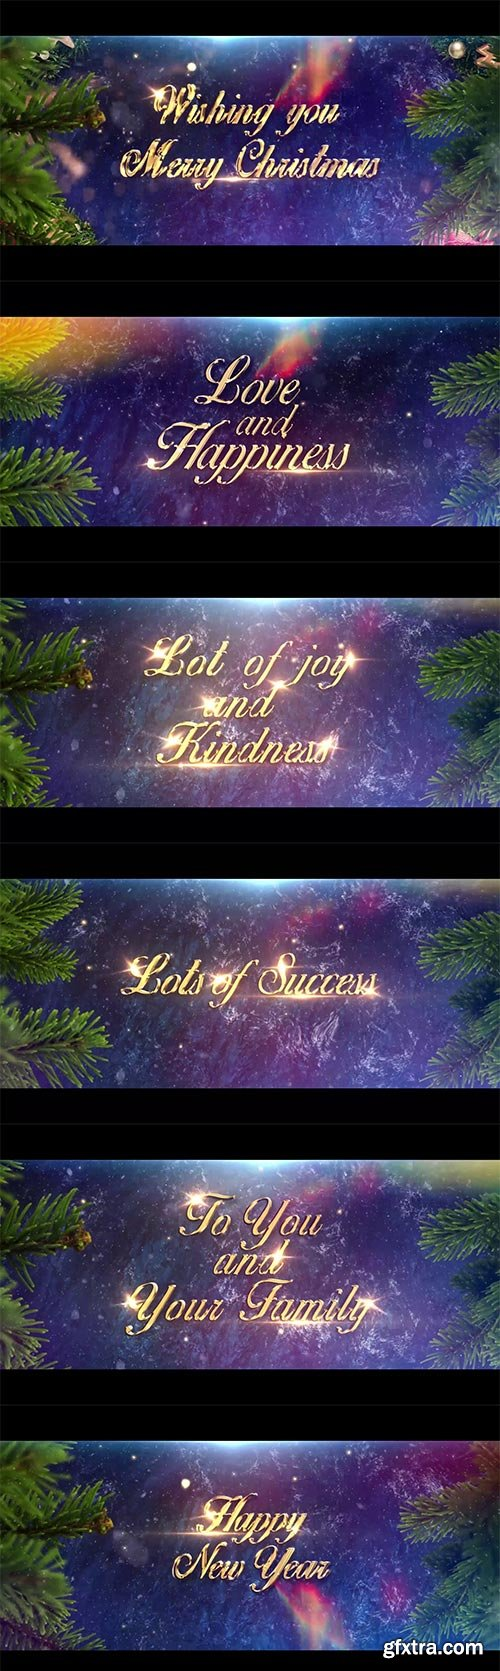 Videohive - Christmas Wishes - 22831013